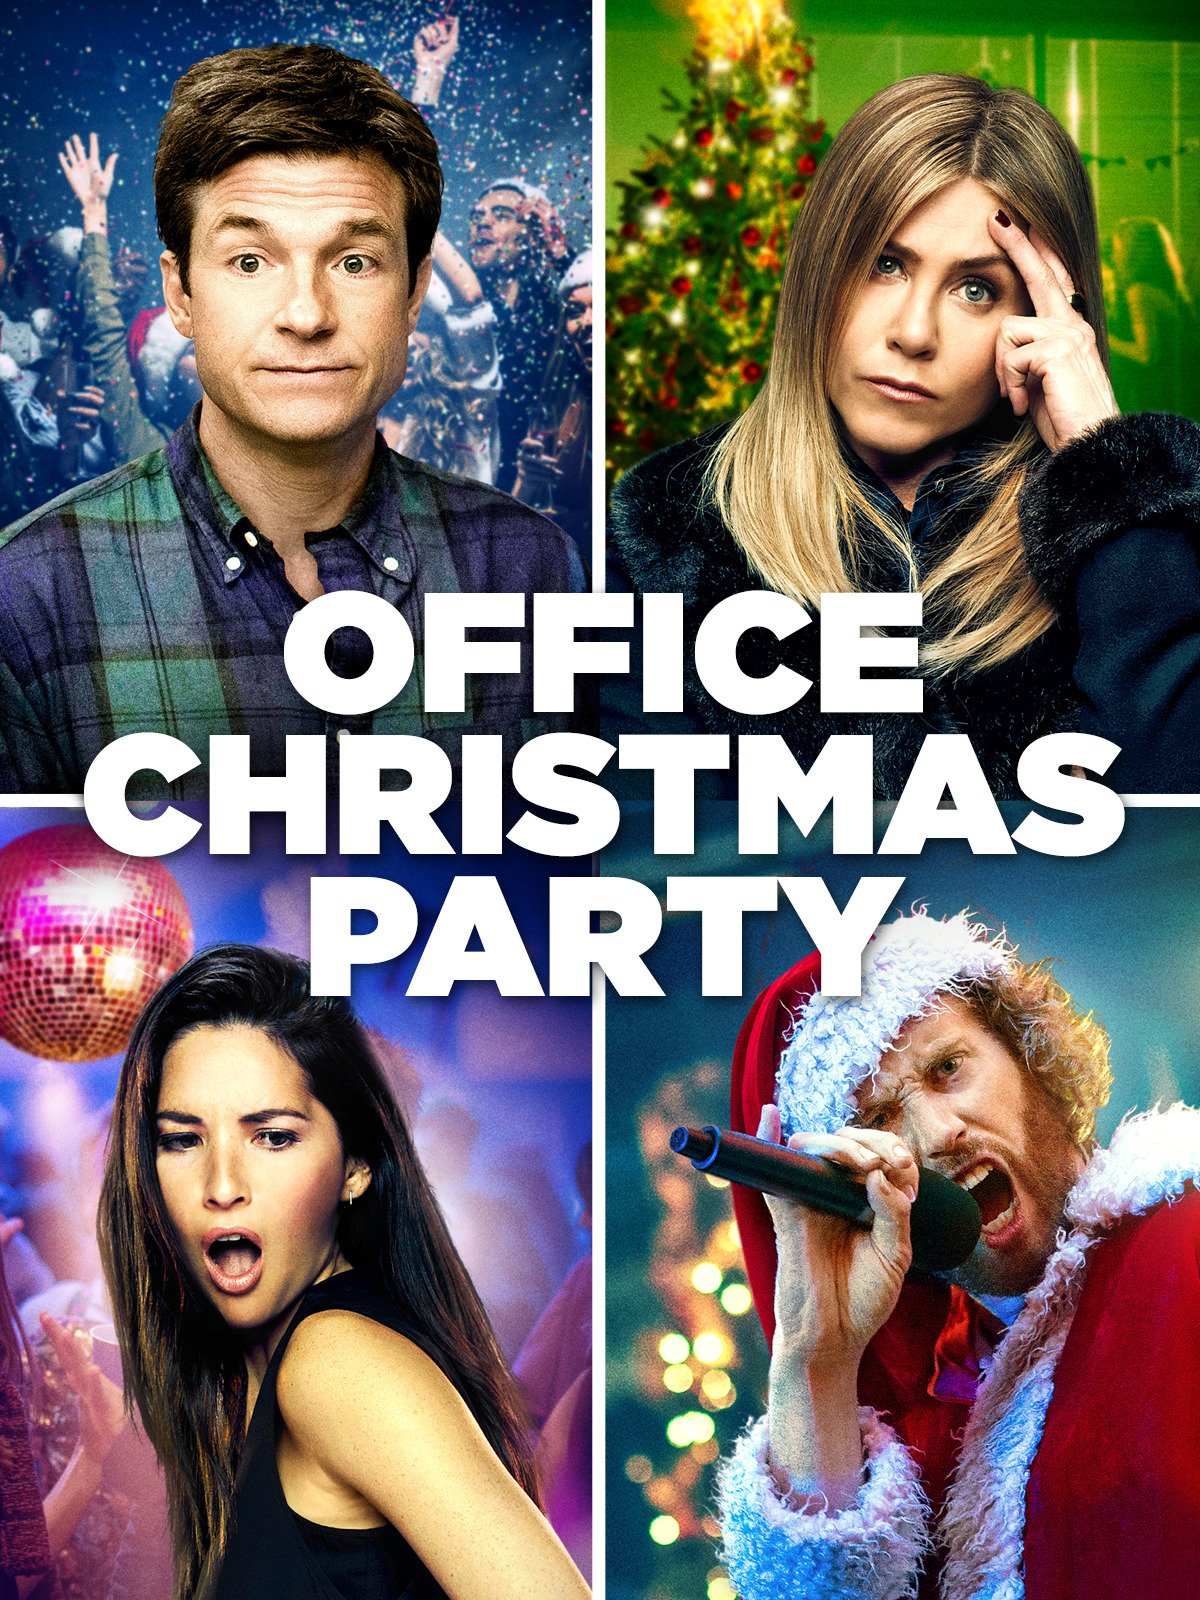 Office Christmas Party Movie.Amazon Co Uk Watch Office Christmas Party Prime Video